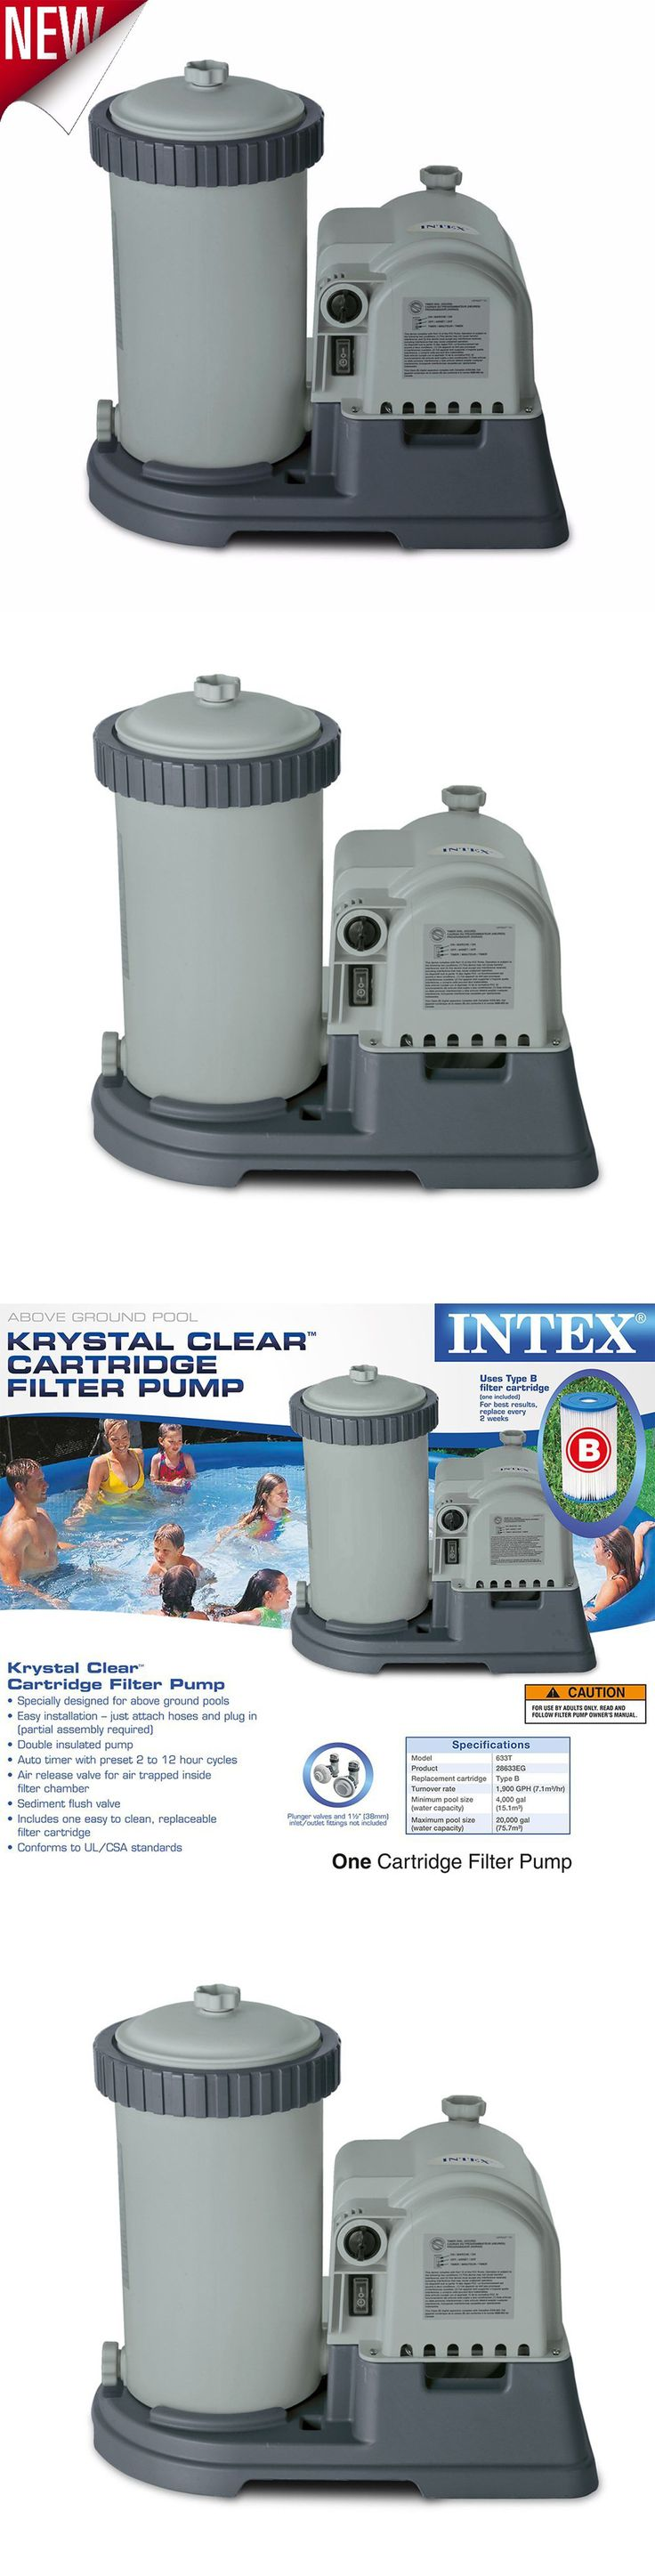 Pool Pumps 181485: Intex Krystal Clear Sand Filter Pump For Above Ground Pools 2500 Gph Pump Fl New -> BUY IT NOW ONLY: $90.28 on eBay!